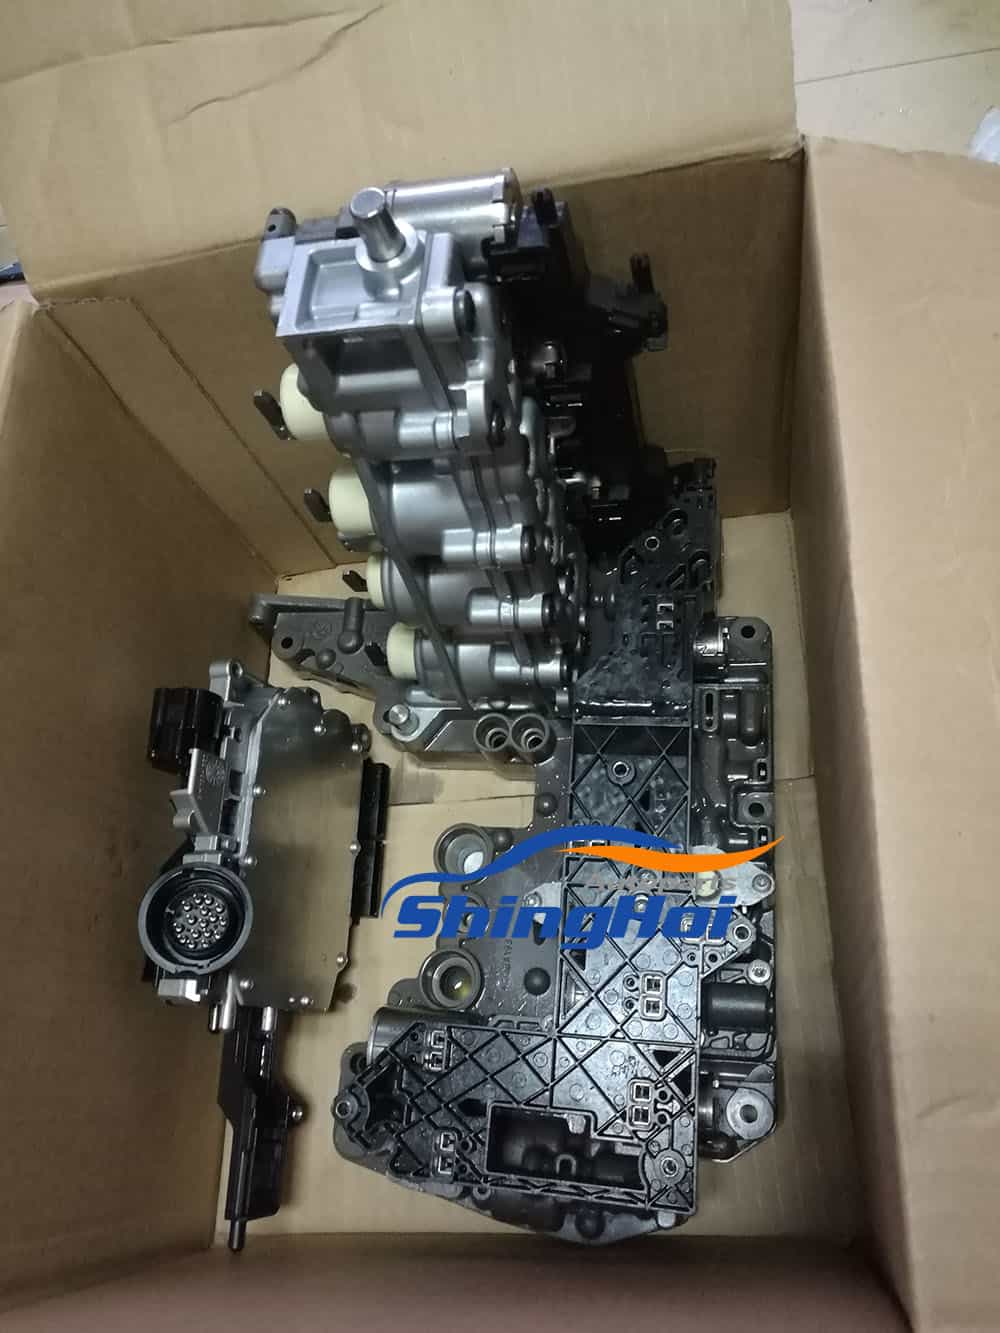 Rebuild Automatic Transmission >> DL501 0B5 DSG Valve Body With TCU and Circuit Board ...